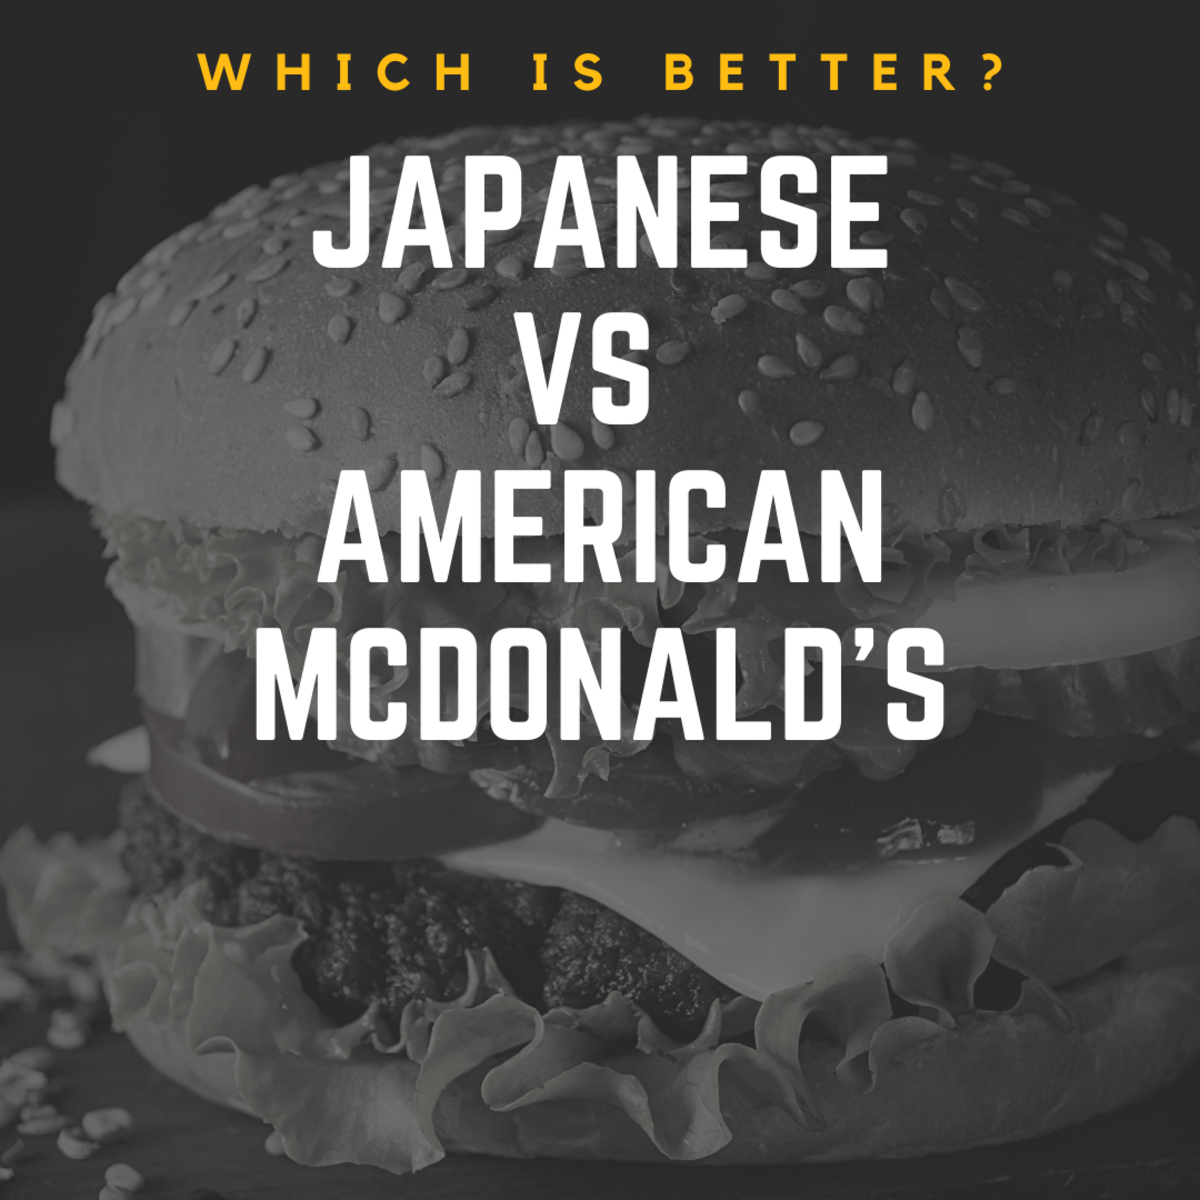 Eating McDonald's in Japan: A Comparison to American McDonalds